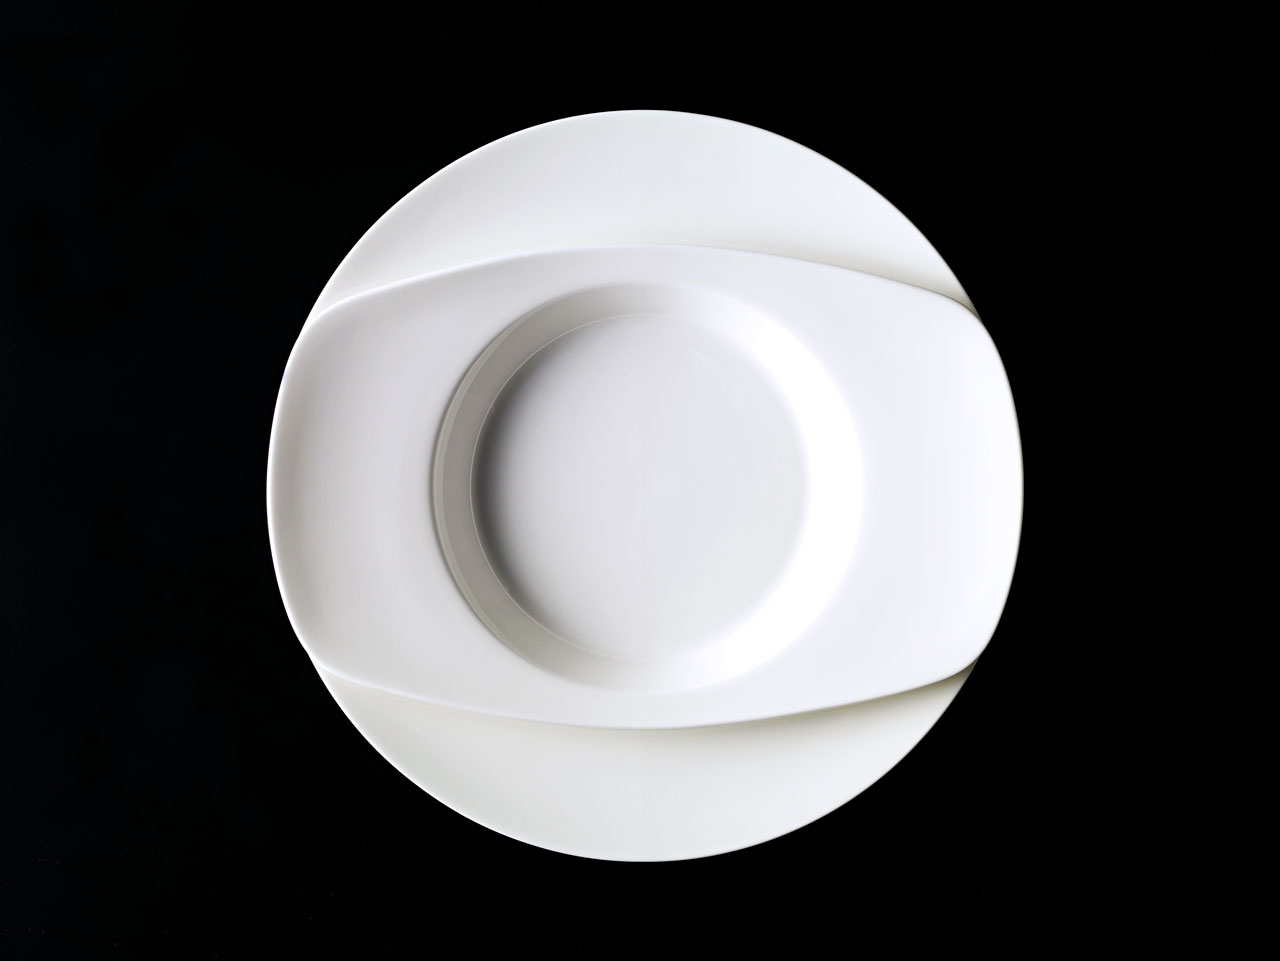 Bent Brandt - TABL white bone china S1 oval soup plate on S1 plate